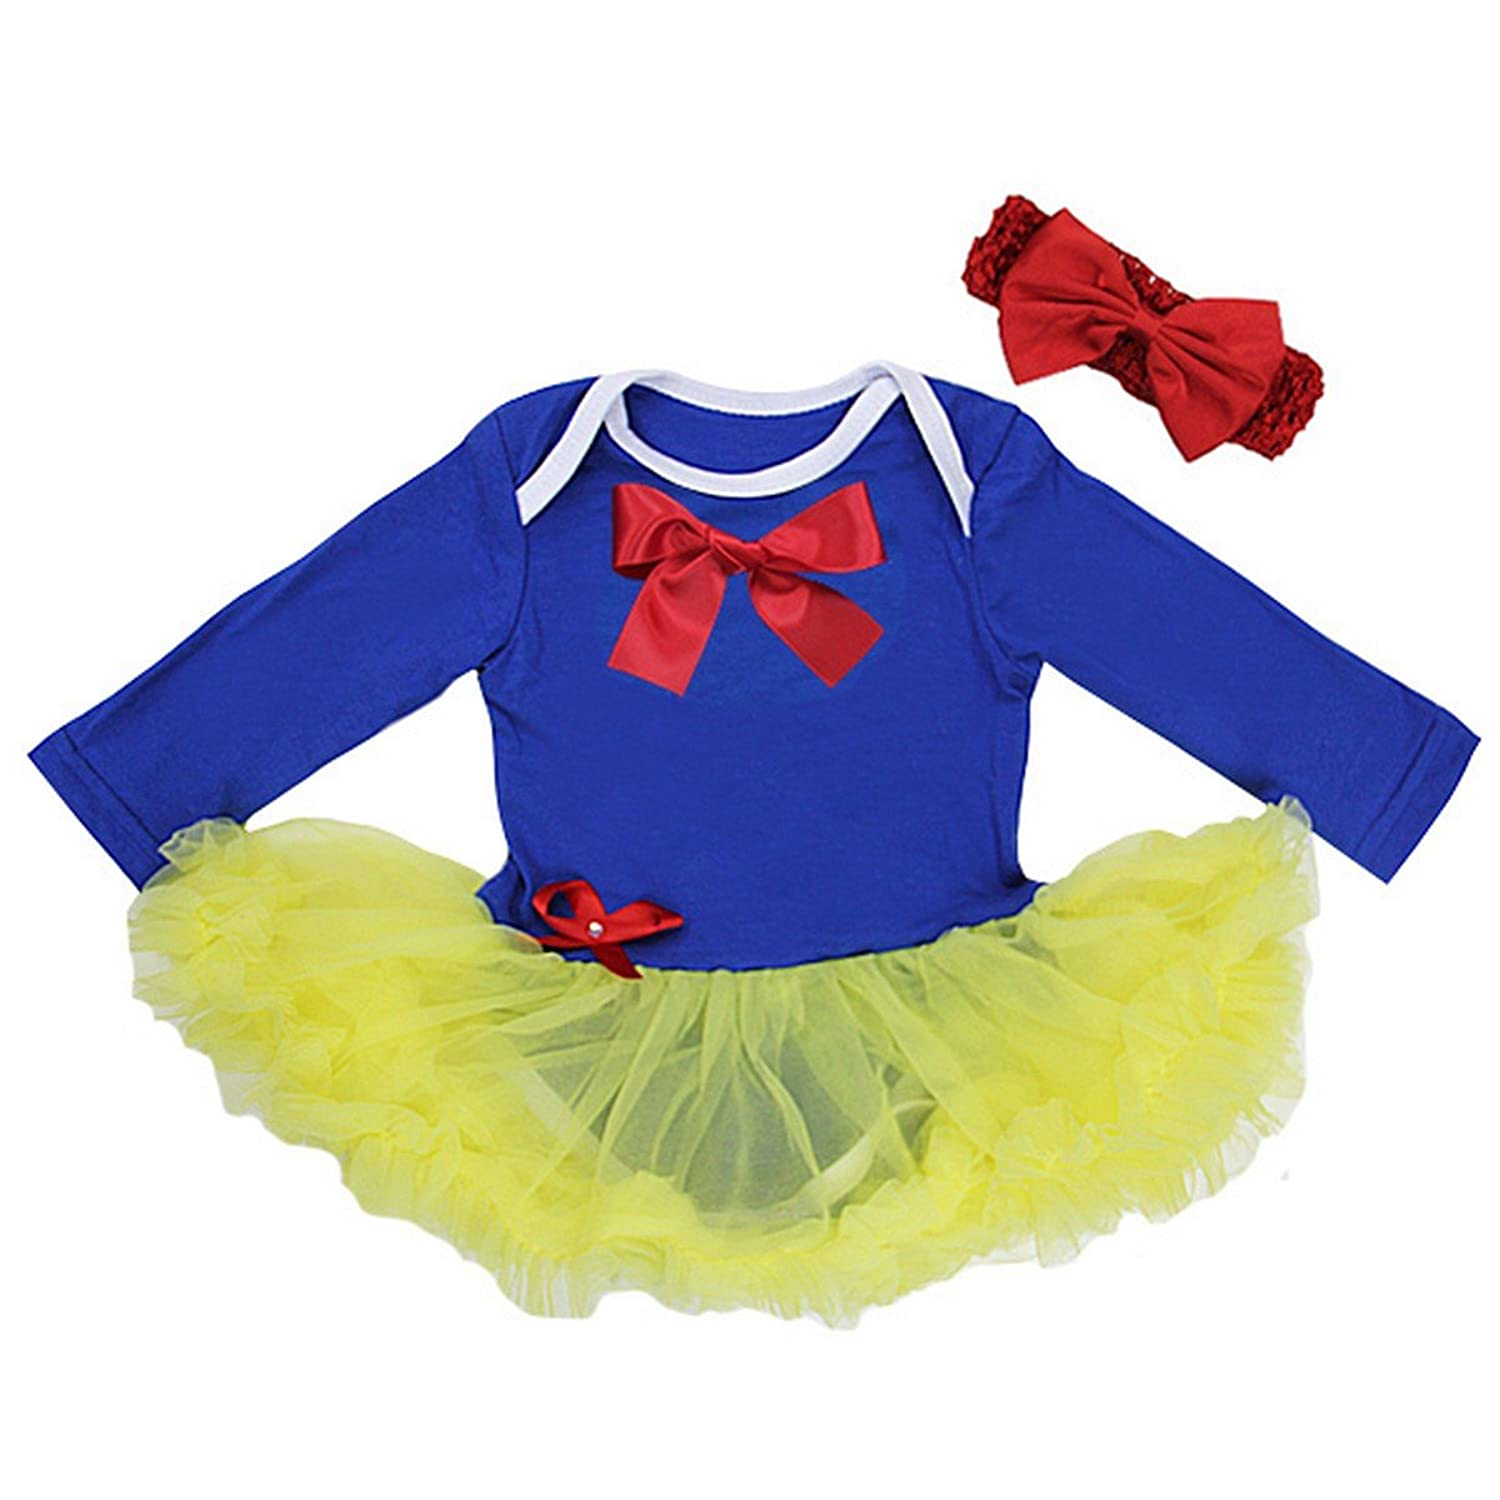 Baby Snow White Princess Costume Bodysuit